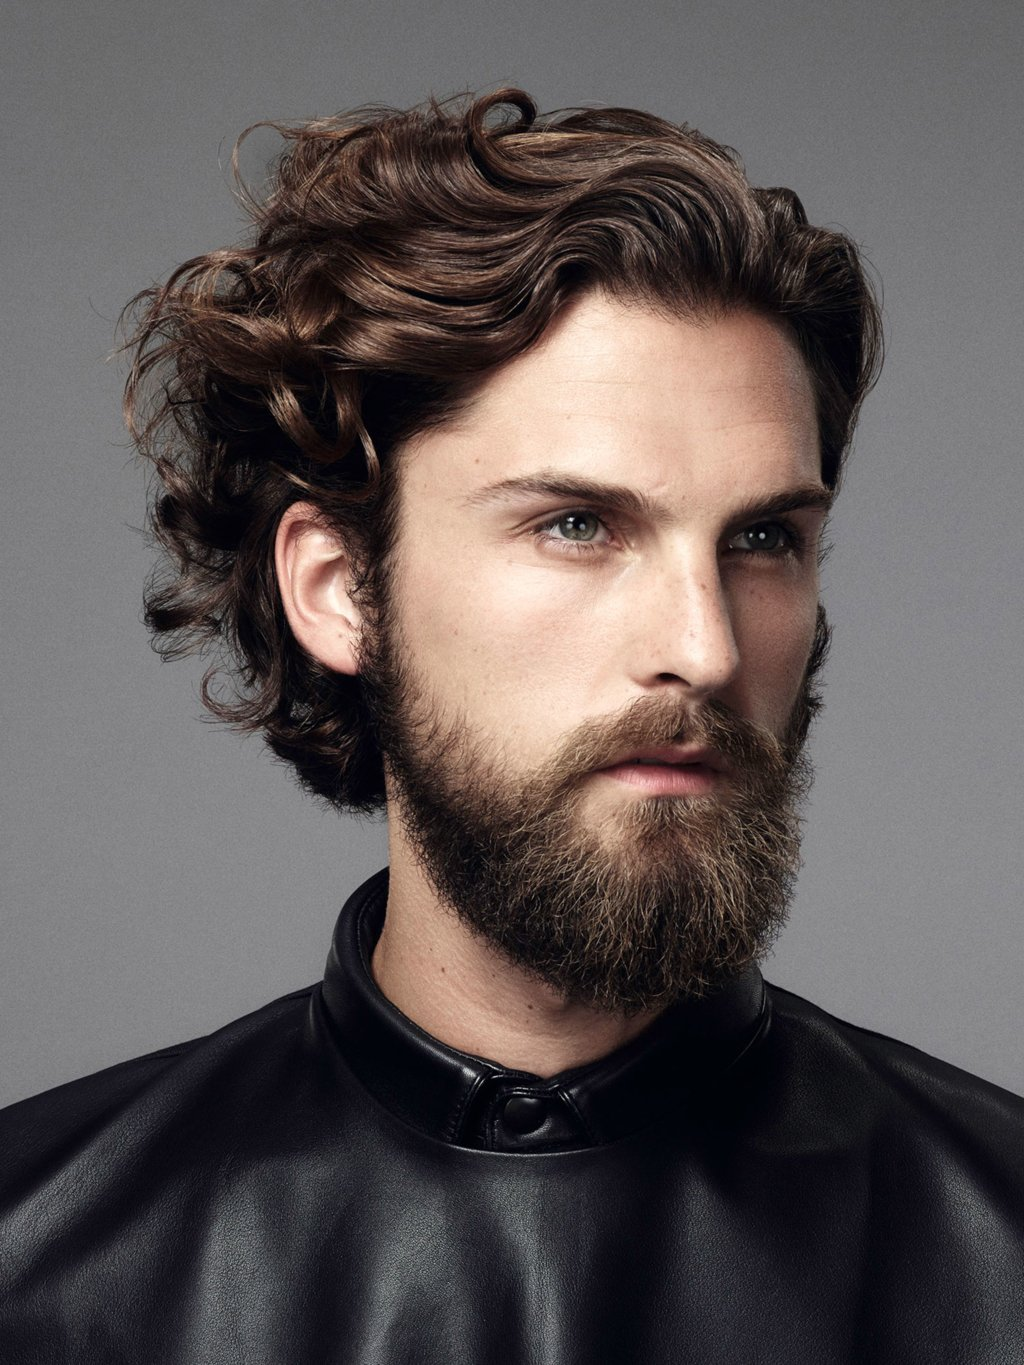 frisur männer übergang | curly hair styles, haircuts for